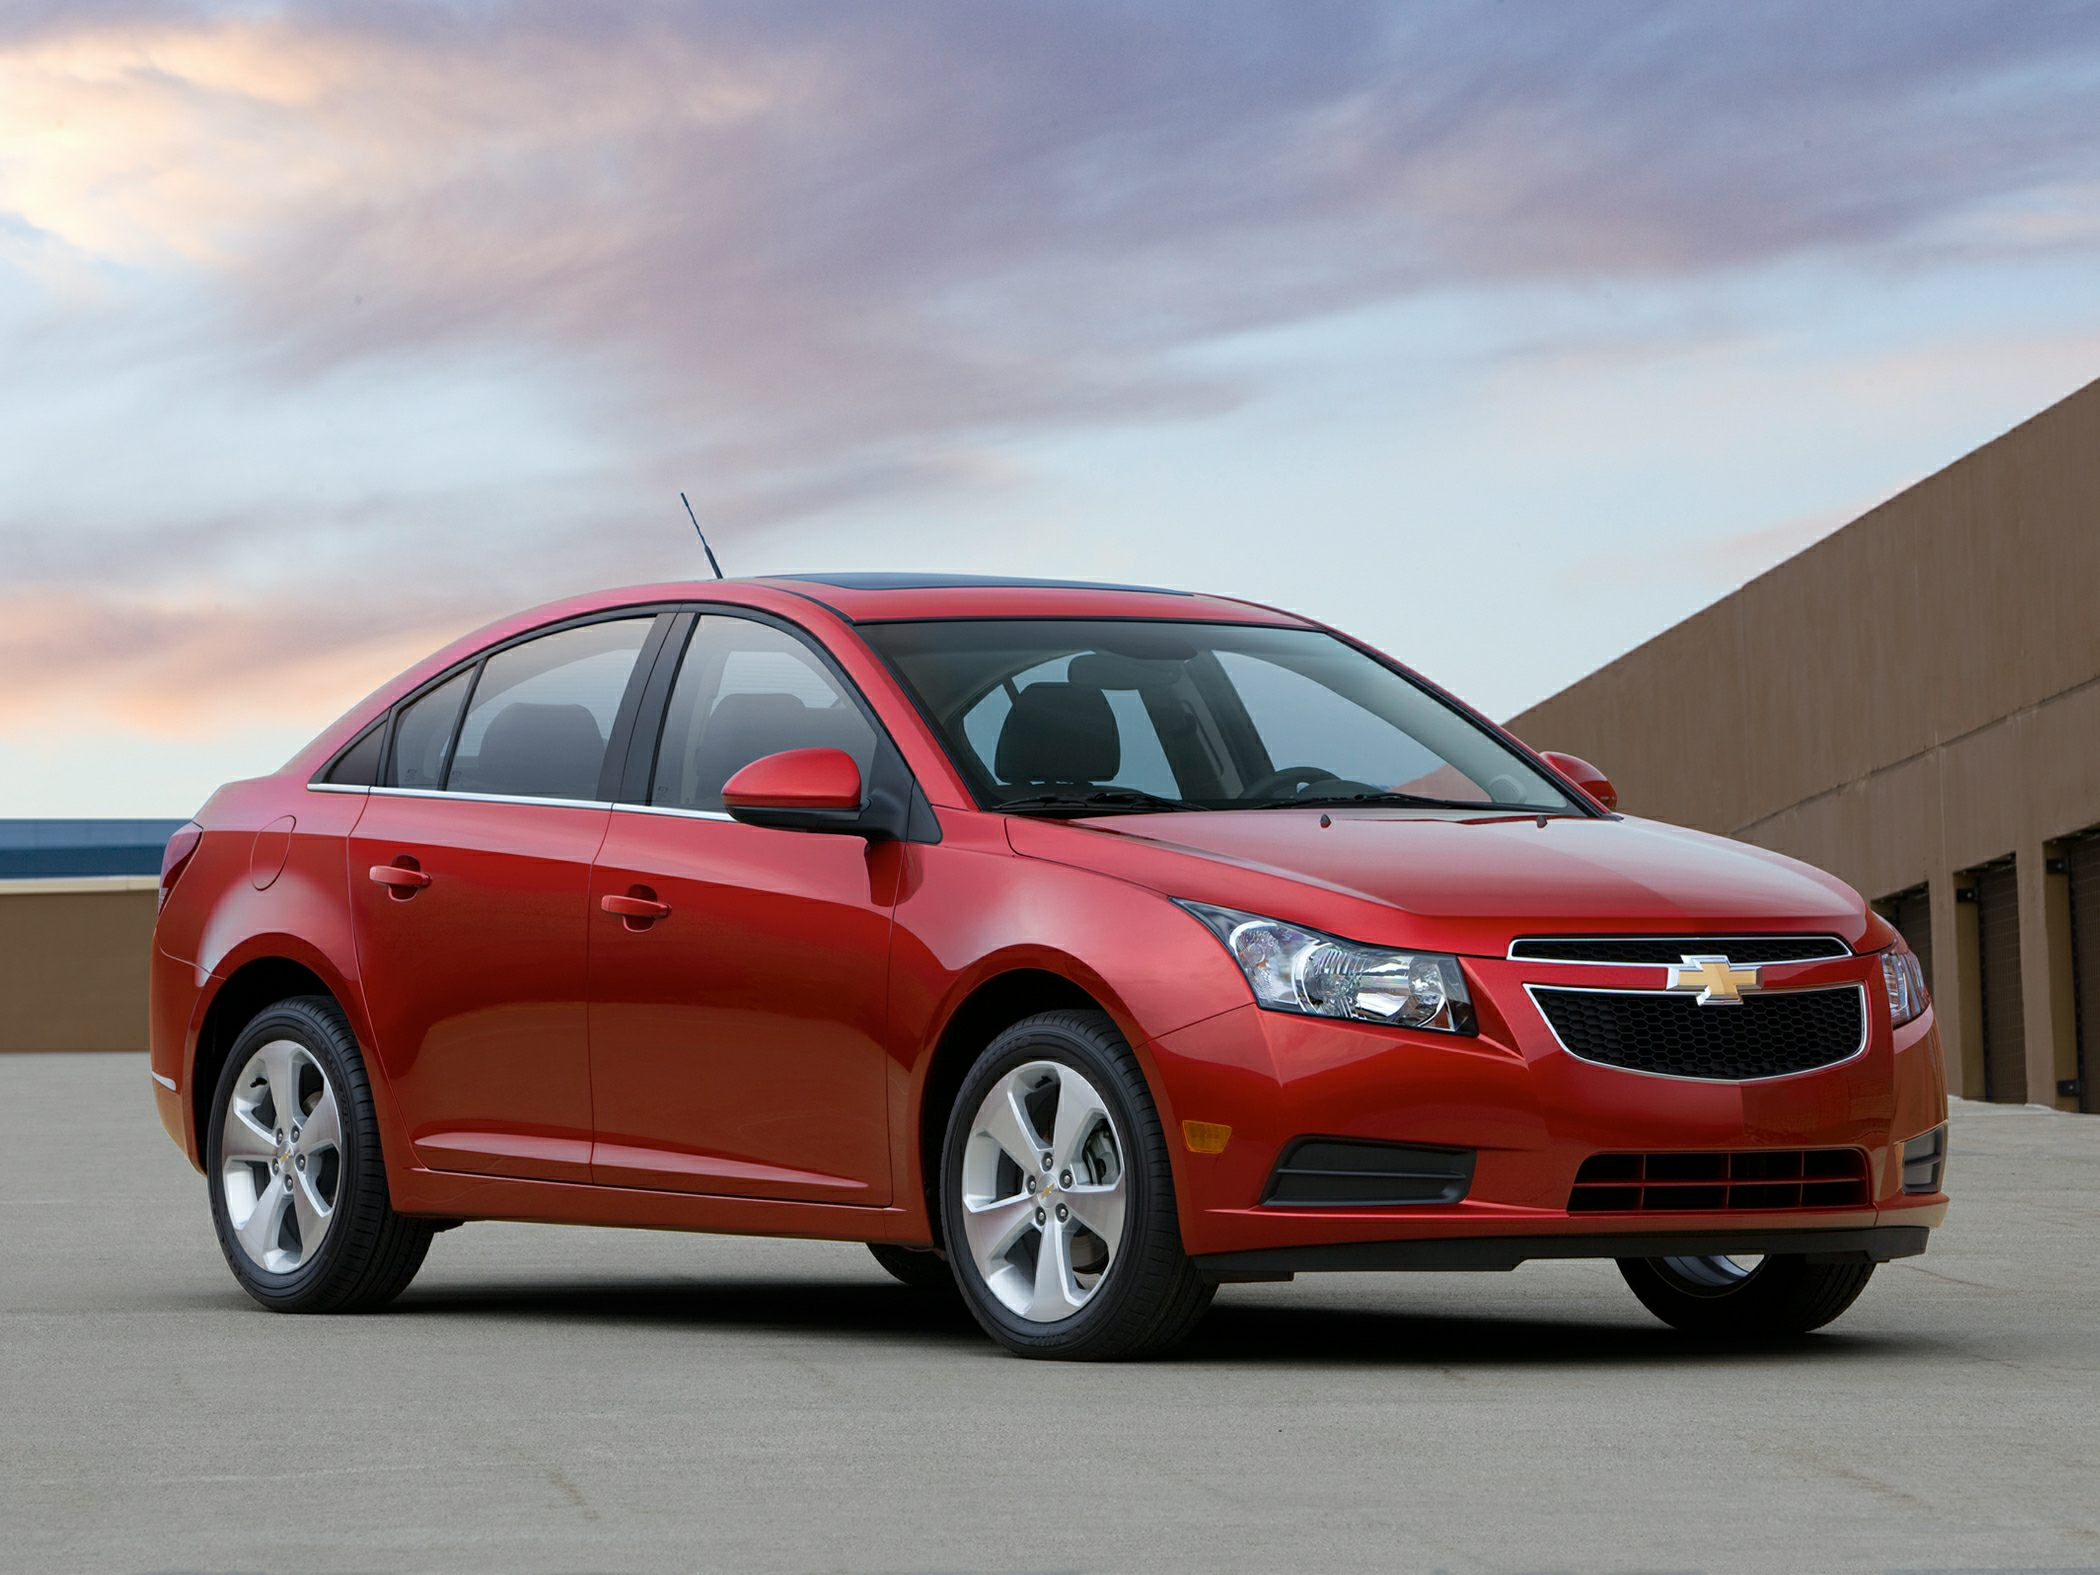 Attractive 2014 Chevrolet Cruze #1